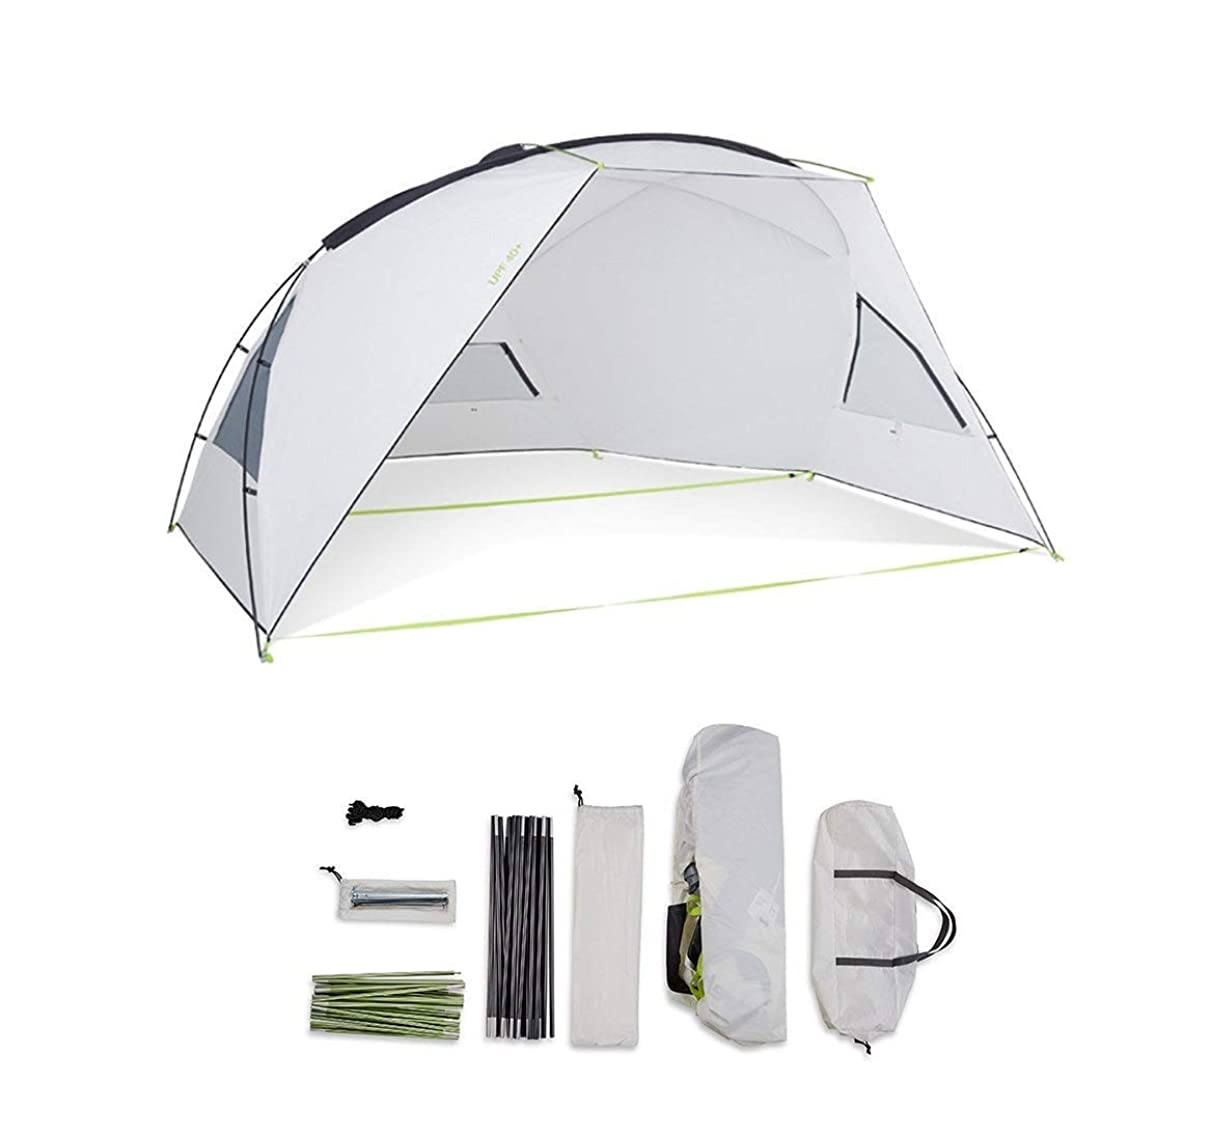 HKTK Awning Waterproof Canopy Awning/Garden Barbecue Tent, Portable Outdoor Beach Tent, Portable Sun Shelter with Sun Protection